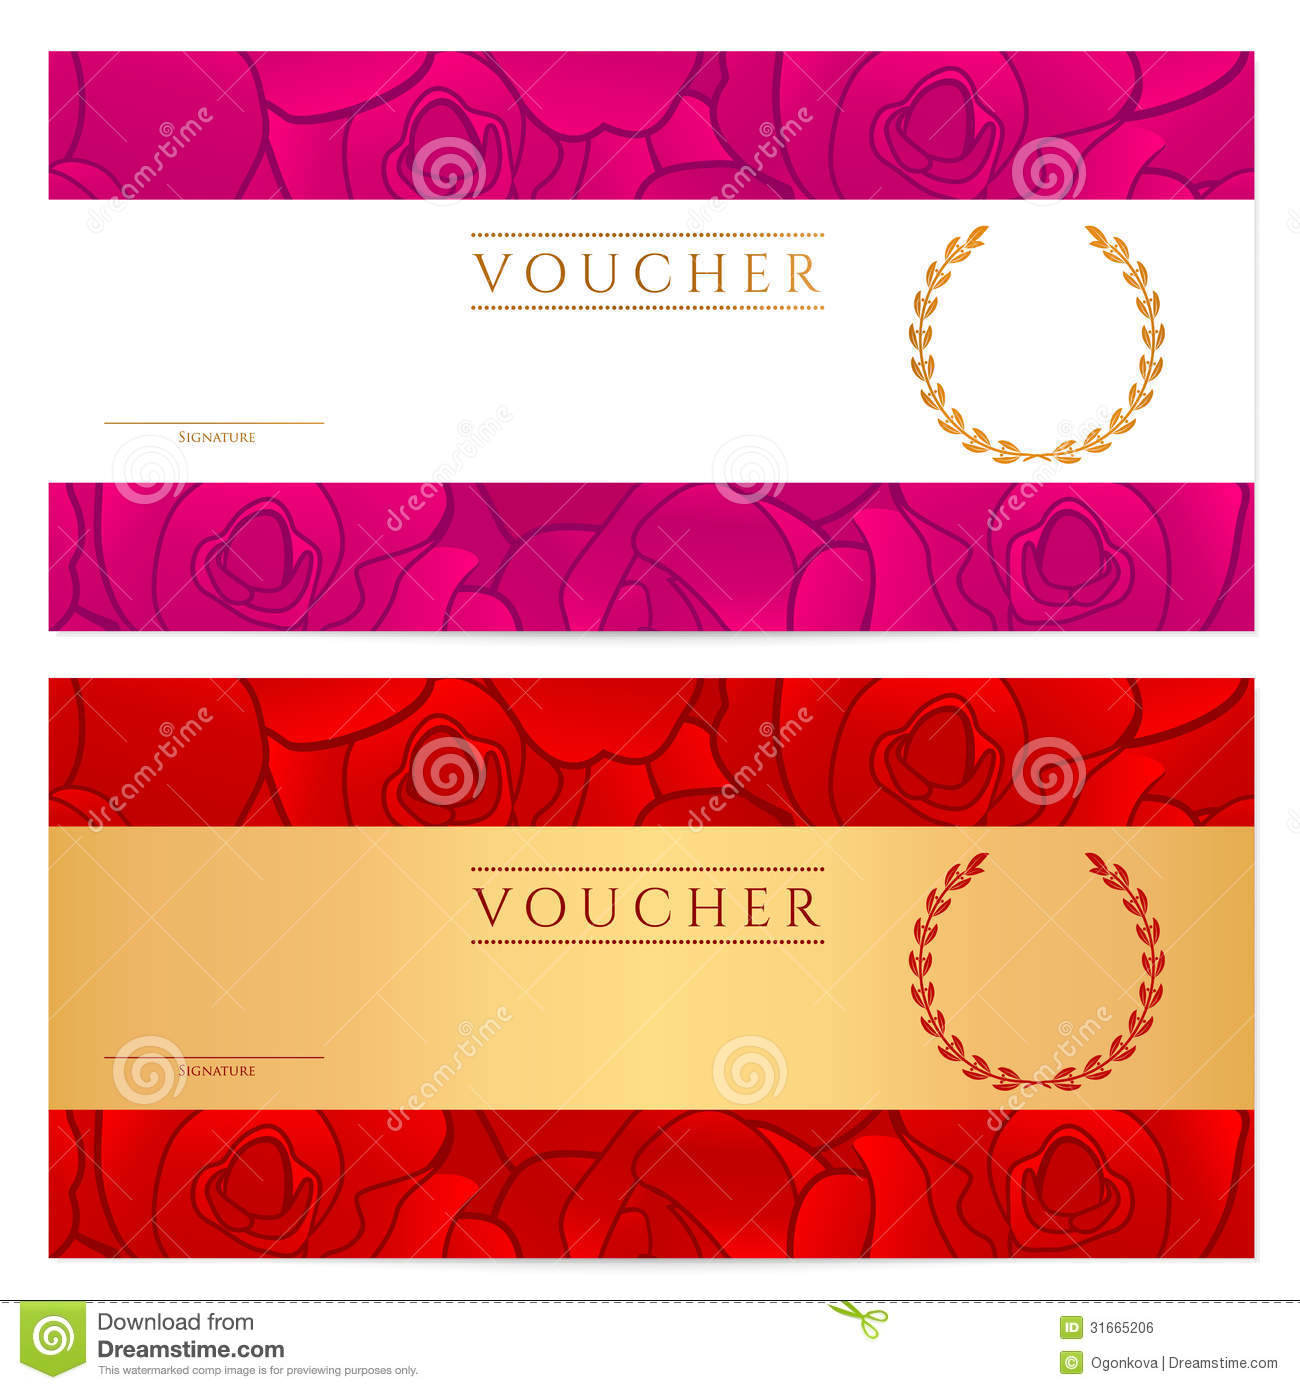 Voucher gift certificate coupon template rose stock vector voucher gift certificate coupon template rose yelopaper Image collections